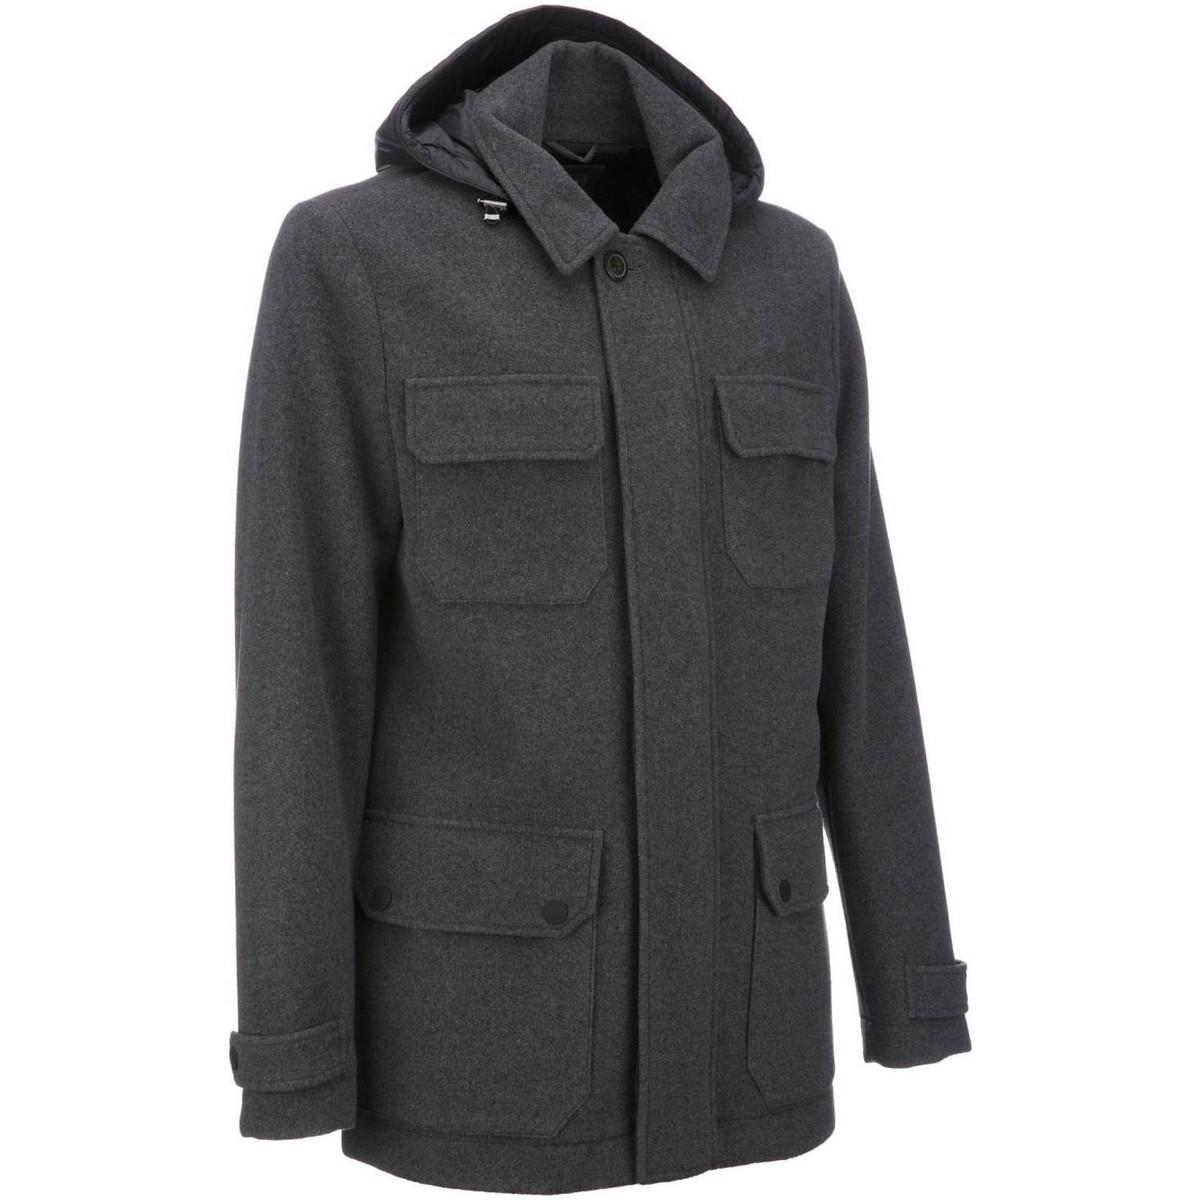 Geox M6415e T2291 Jacket Man Grey Men's Jacket In Grey in Grey for Men